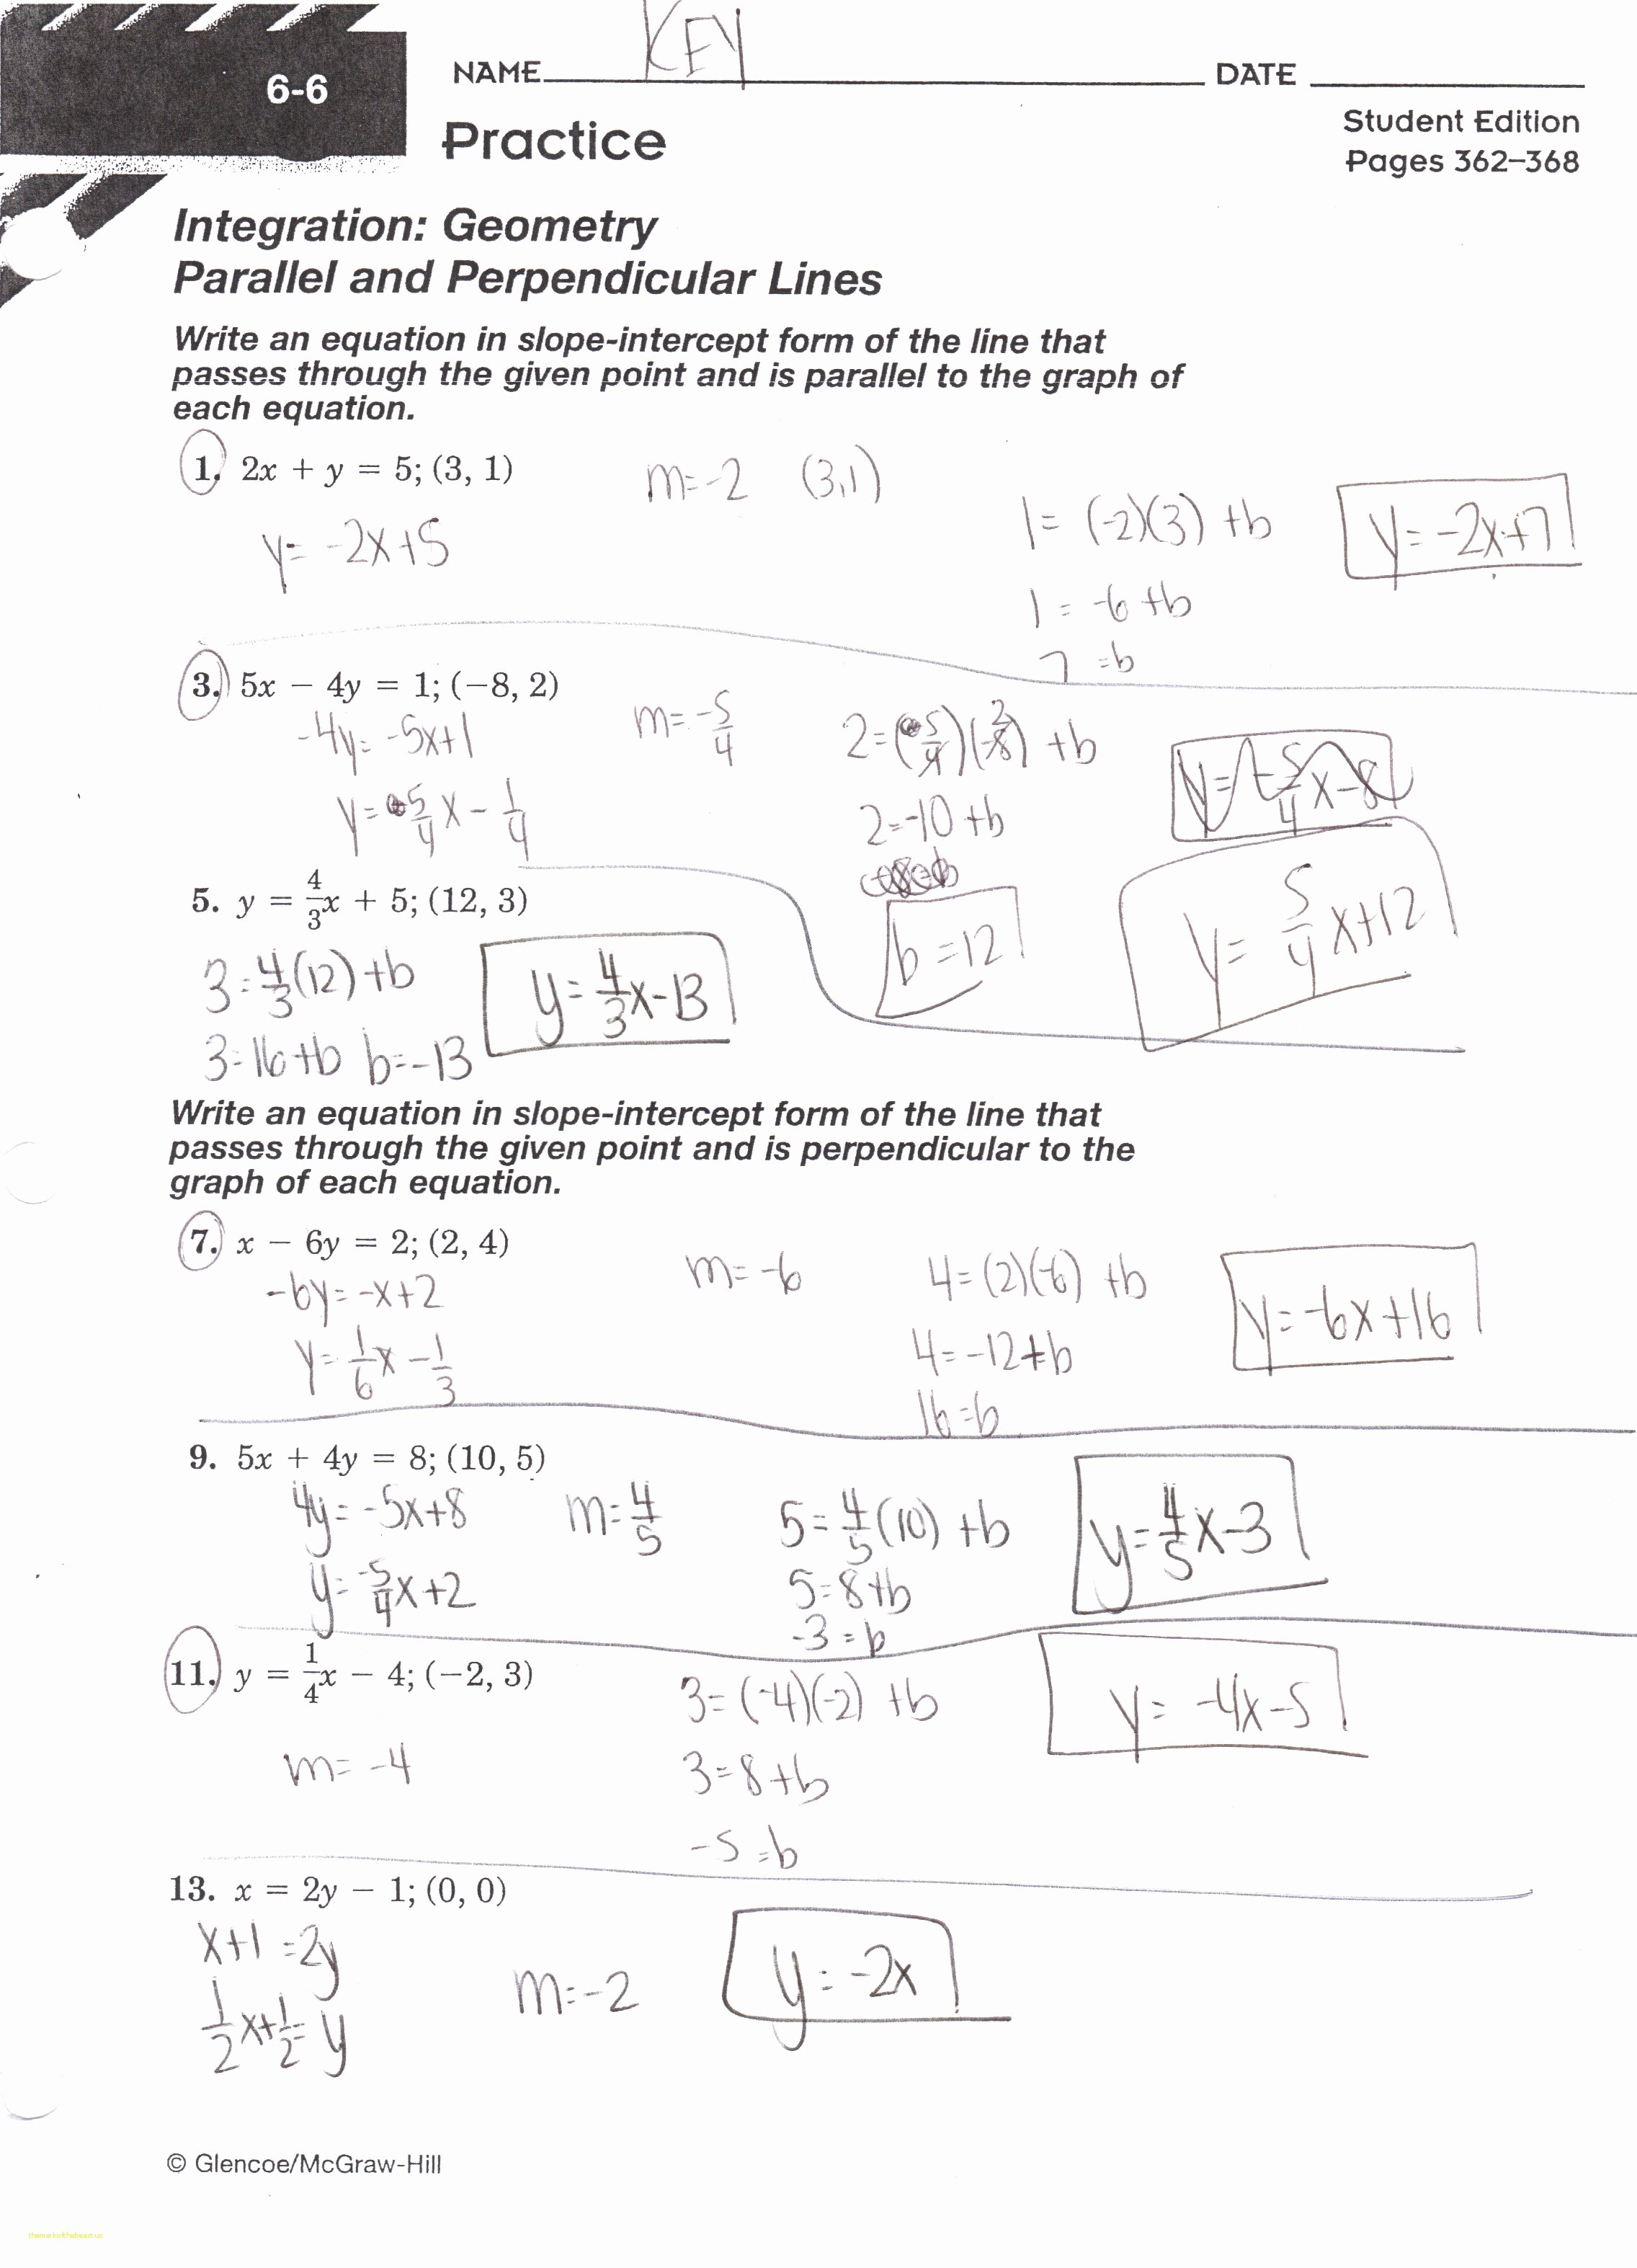 Linear Equations Word Problems Worksheet Unique Linear Equations Word Problems Worksheet with Answers